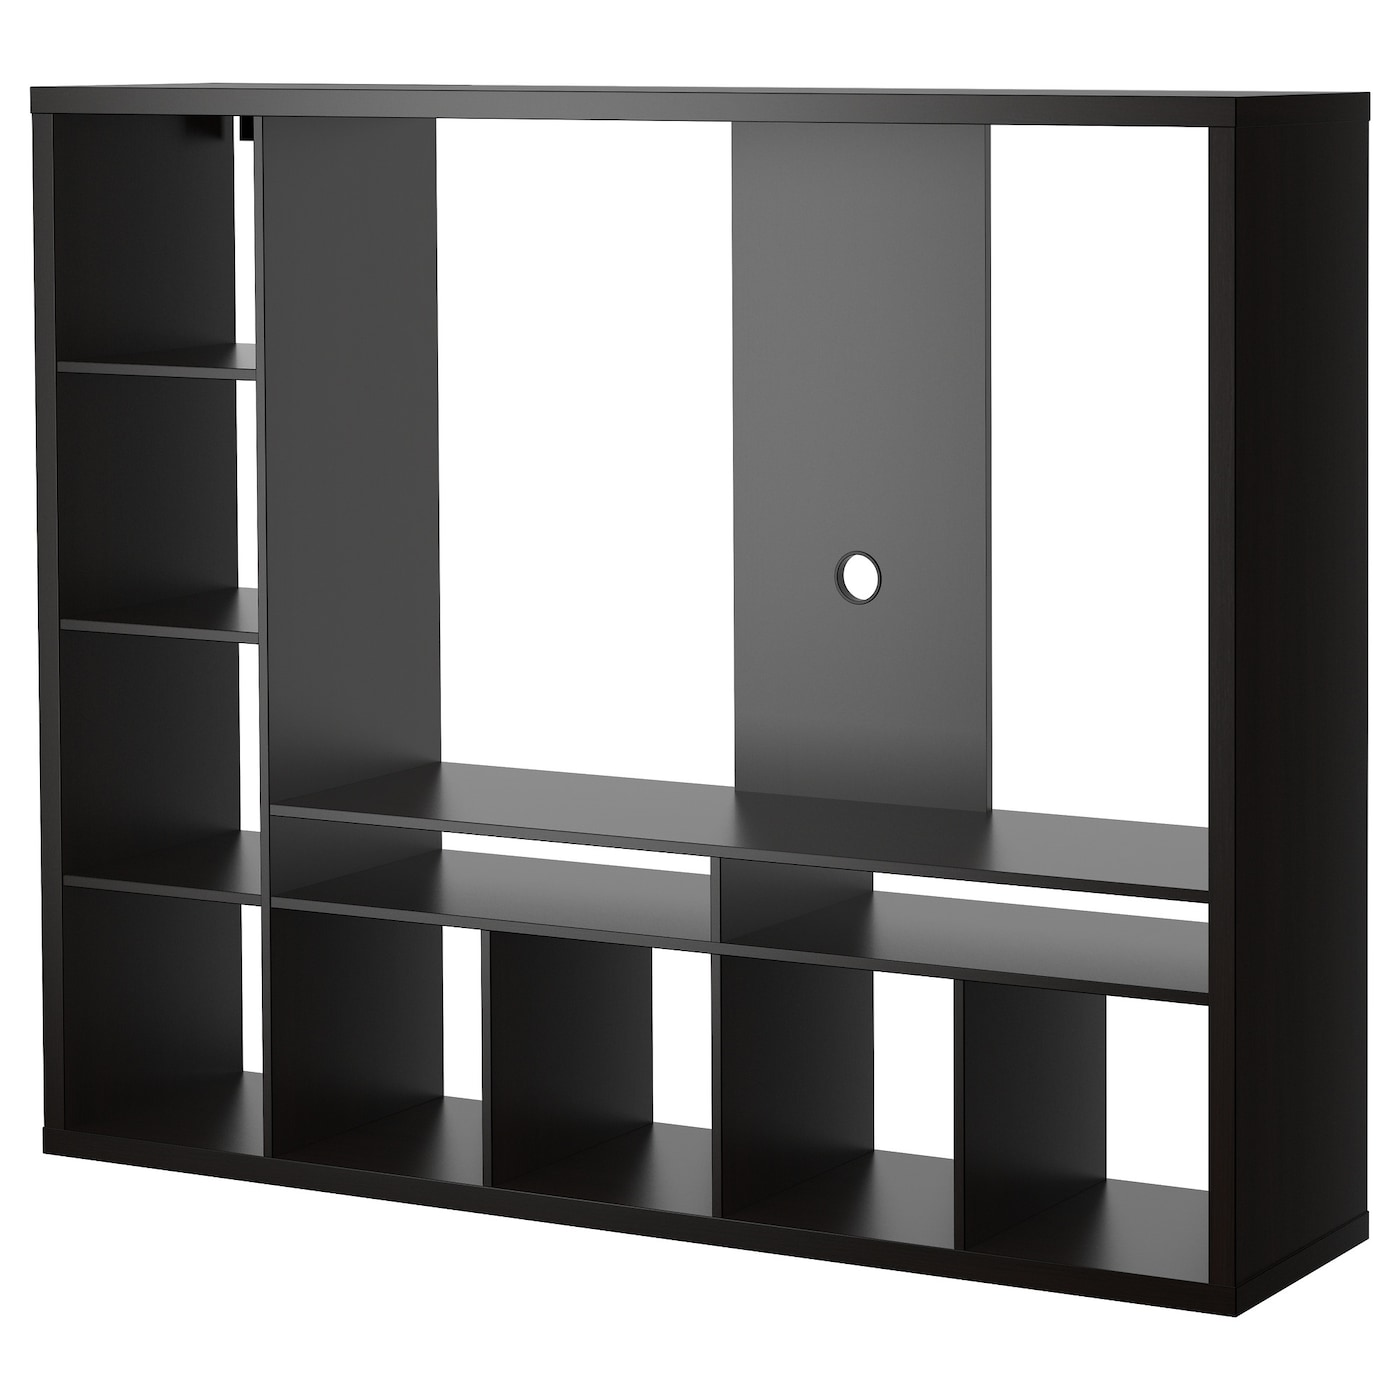 lappland tv storage unit black brown 183x147 cm ikea. Black Bedroom Furniture Sets. Home Design Ideas